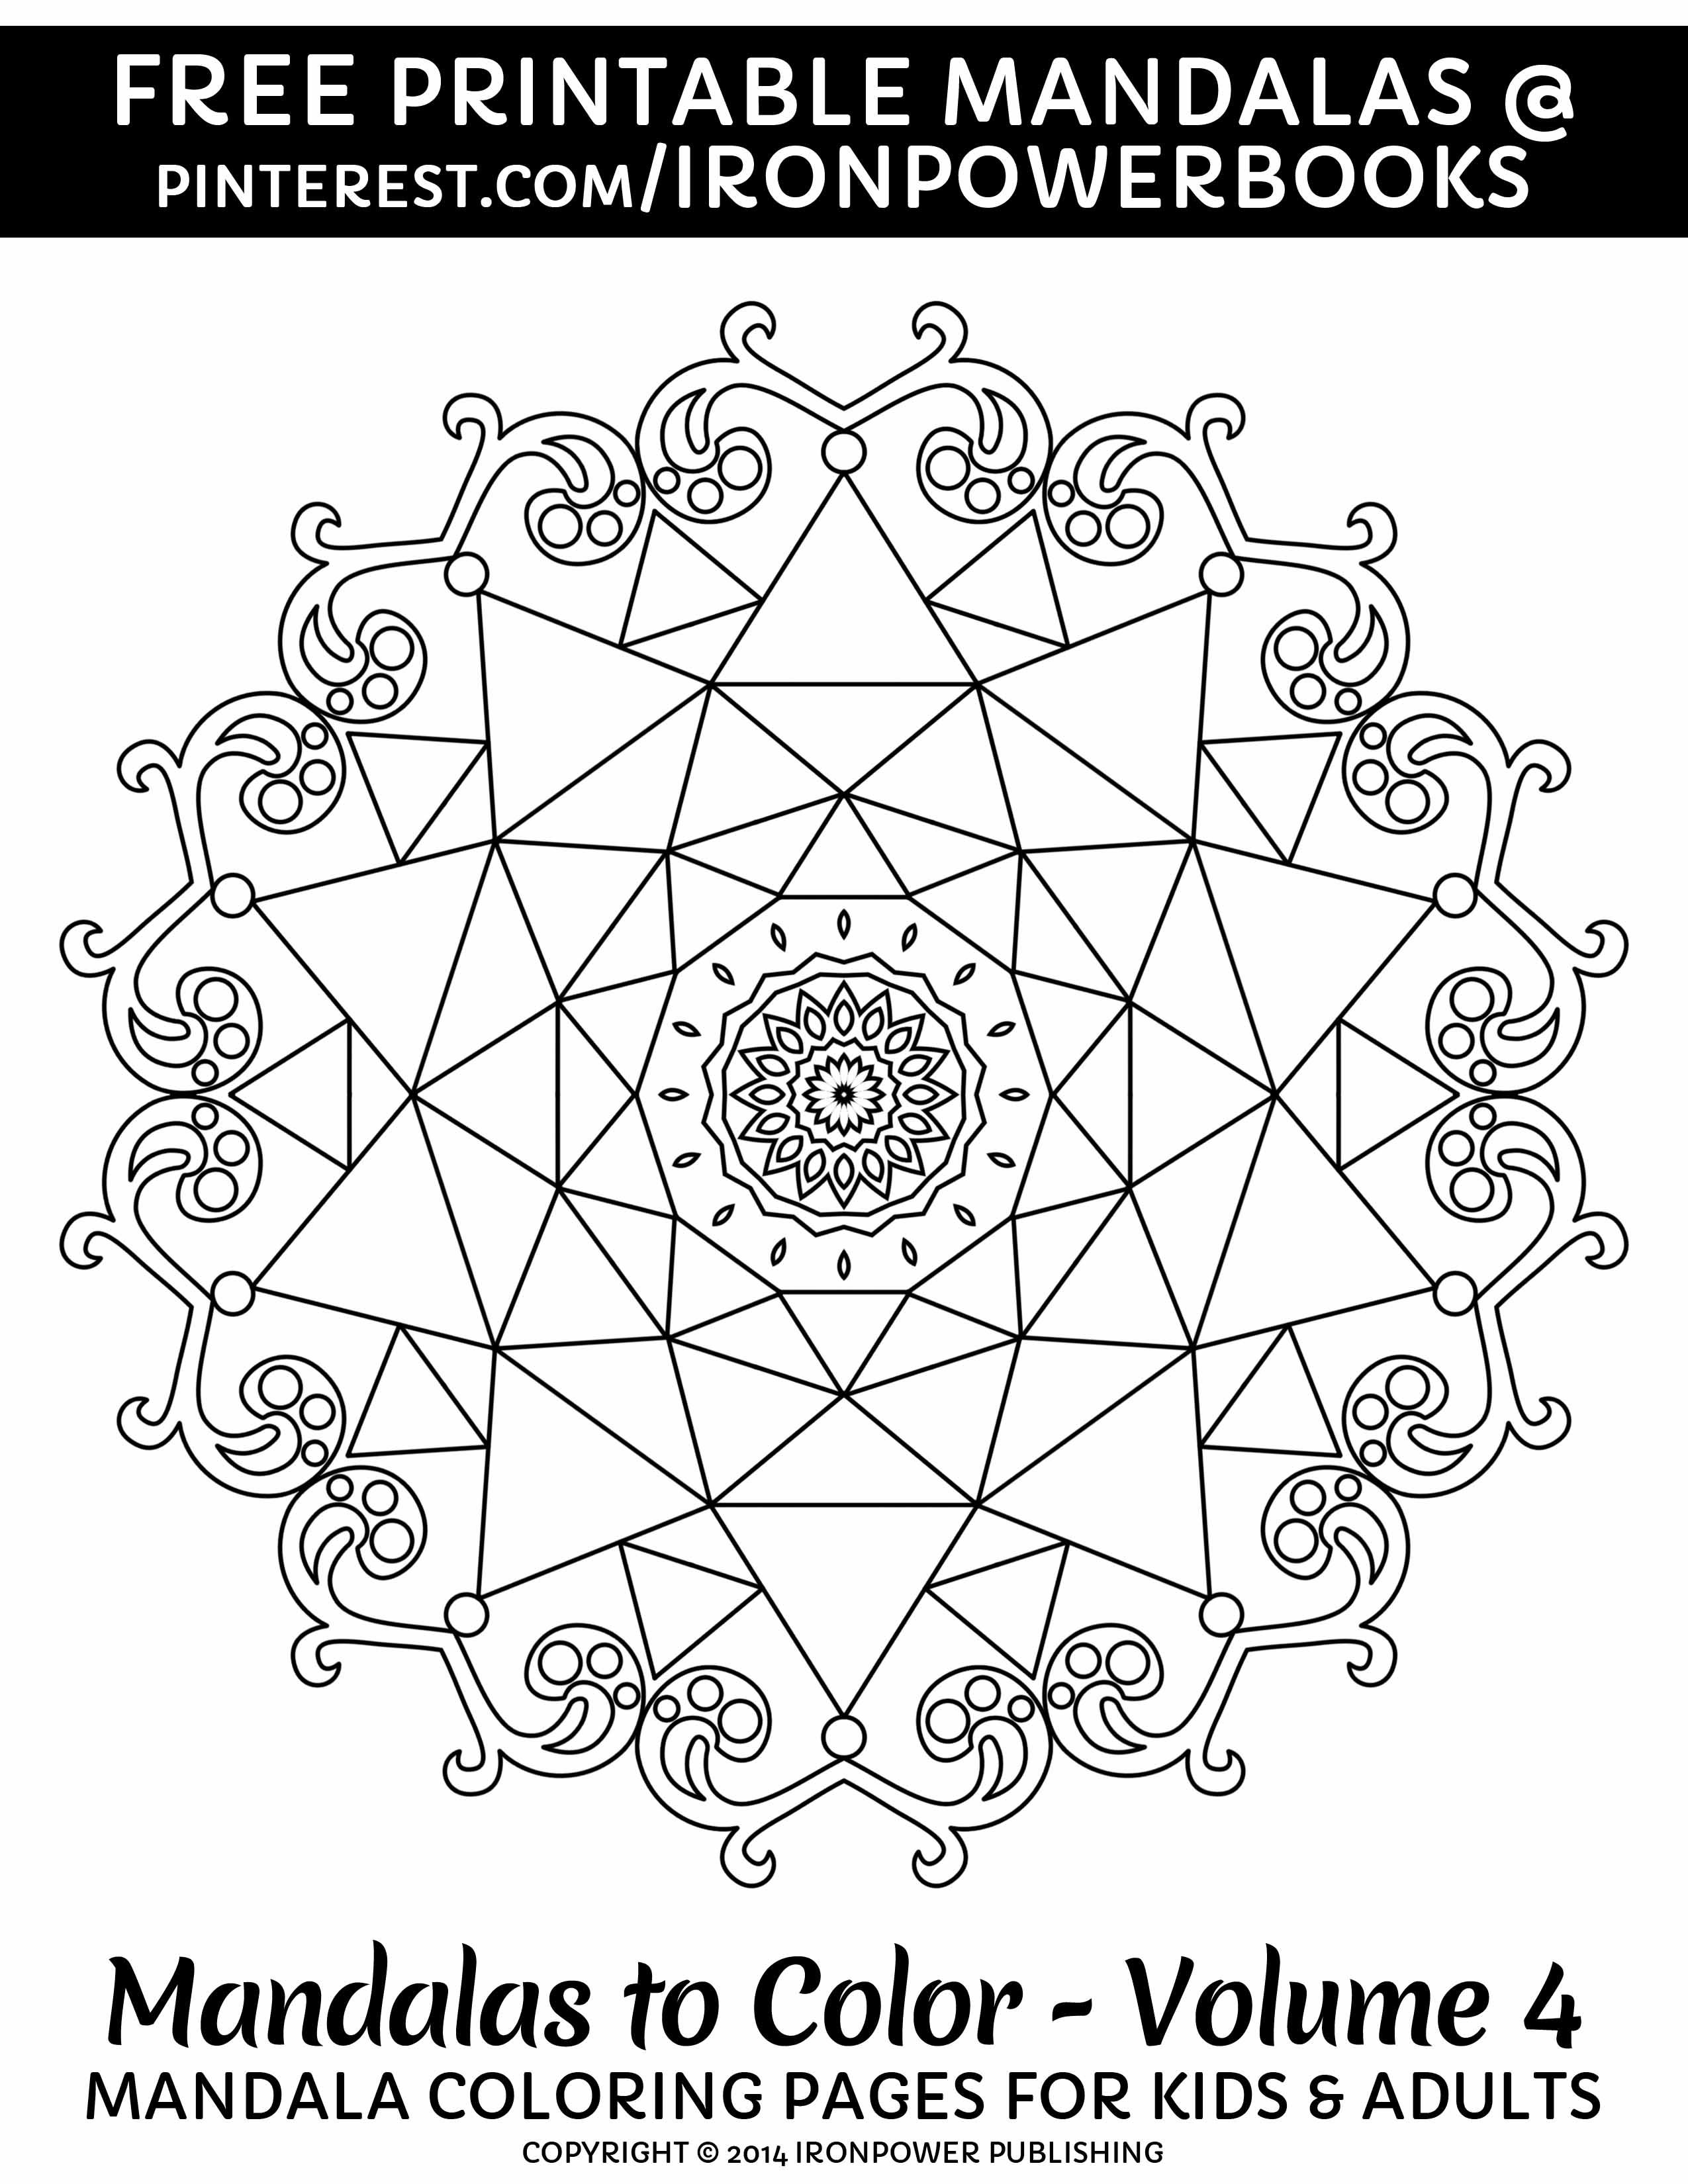 Easy mandala coloring pages for kids and adults from Mandalas to ...